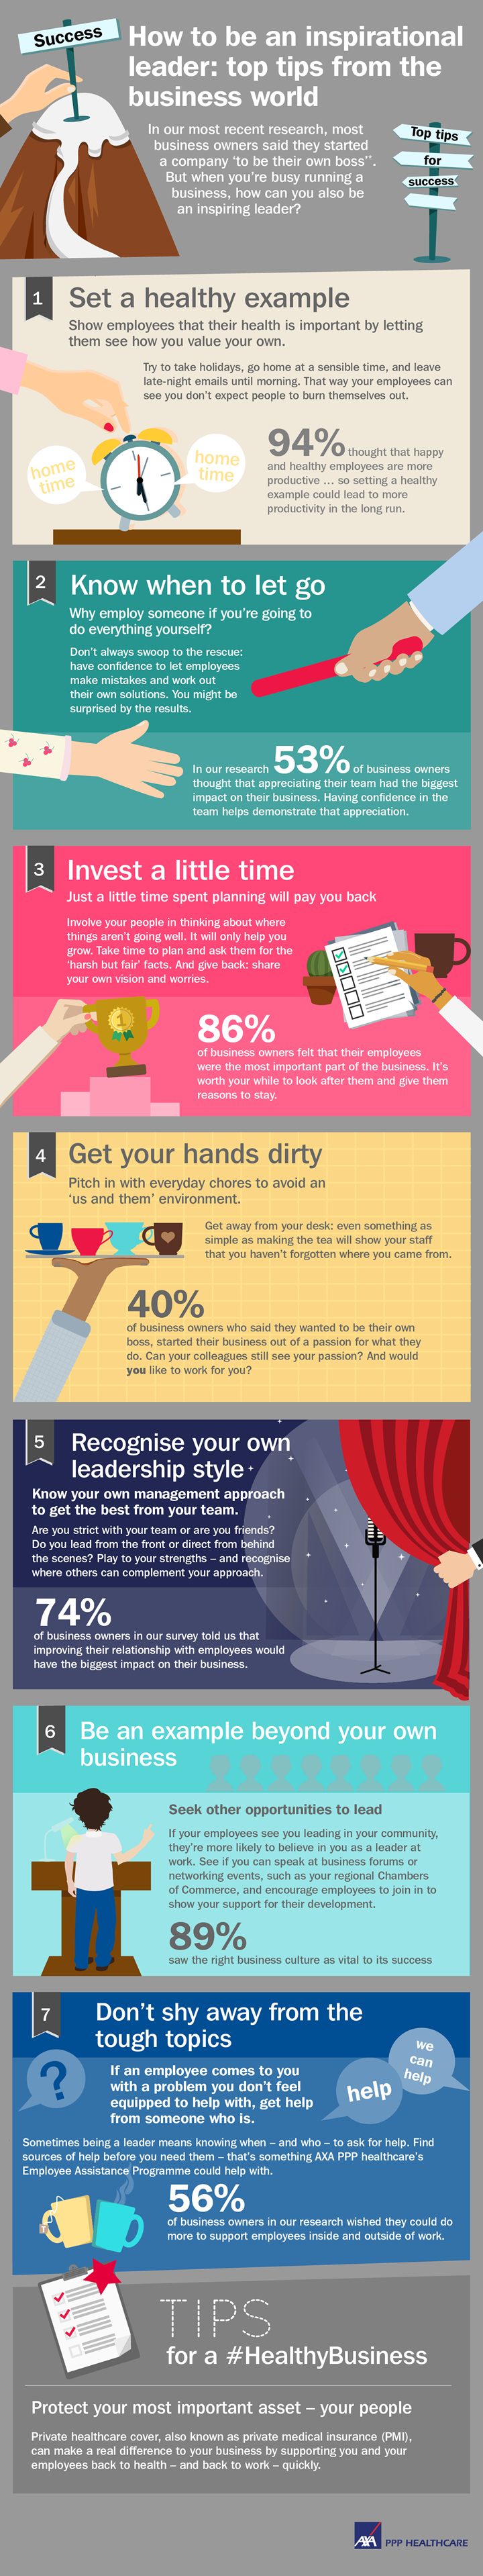 leadership-infographic-720x2859.png